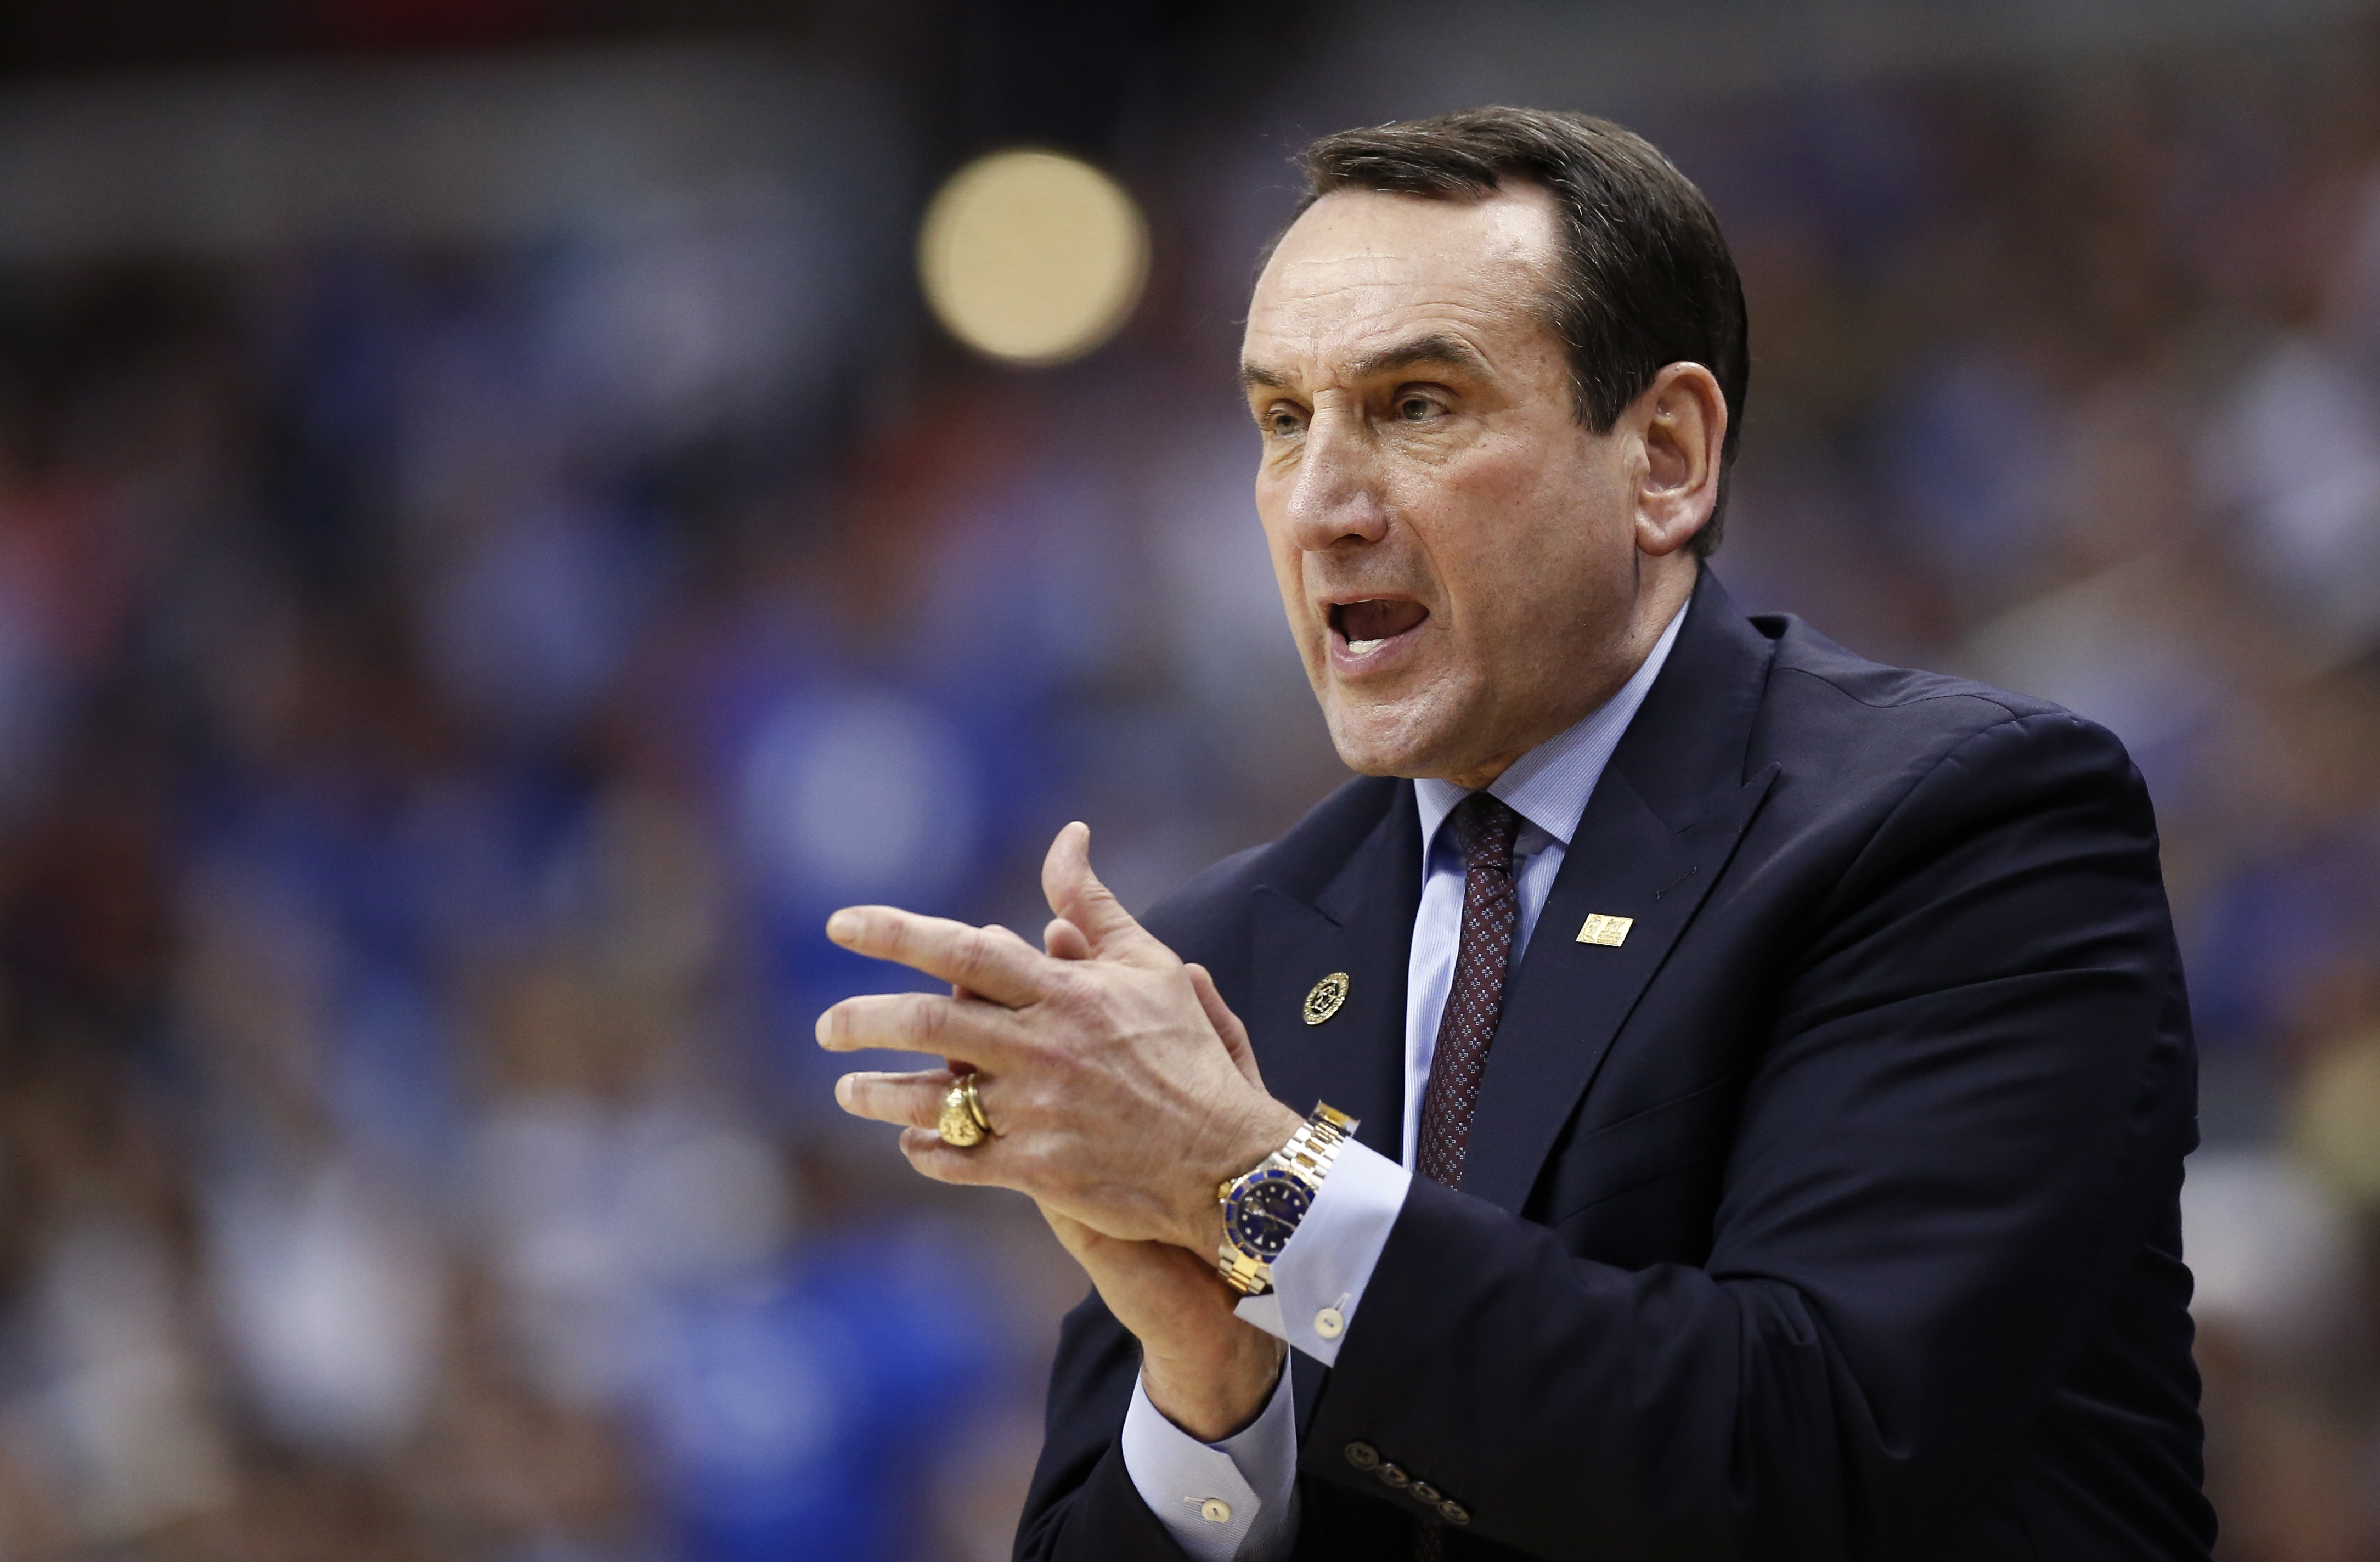 FILE - In this Thursday, March 10, 2016 file photo, Duke head coach Mike Krzyzewski reacts during the first half of an NCAA college basketball game in the Atlantic Coast Conference tournament against Notre Dame in Washington. Oregon coach Dana Altman's me